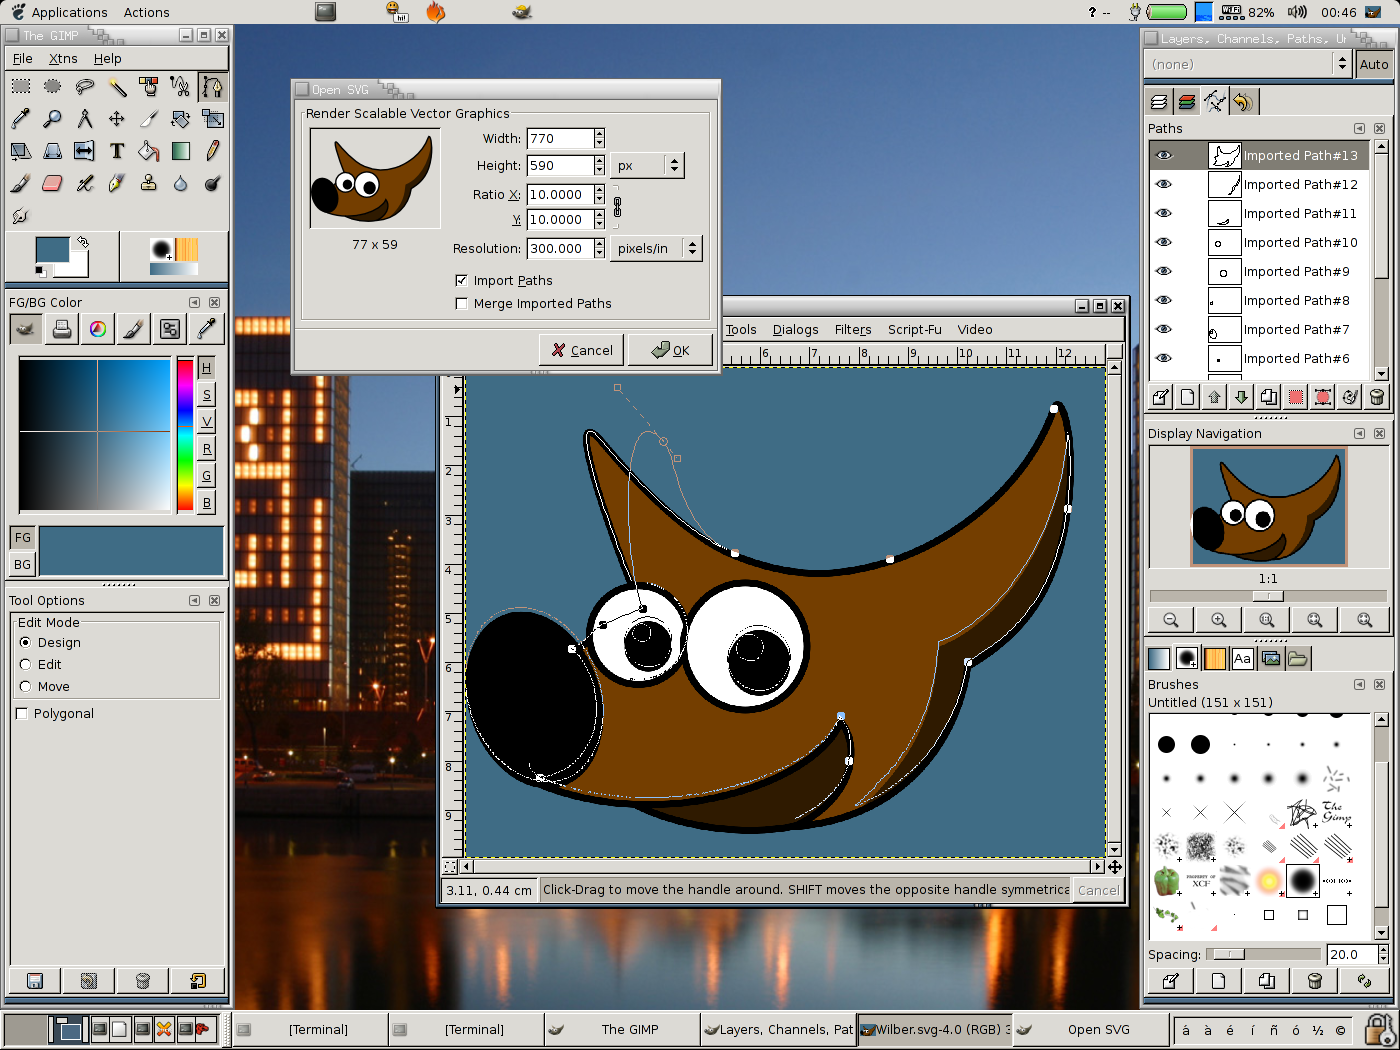 Download Gimp Free Replacement For Adobe Photoshop Free Photo Editing Free Image Editing Software Photo Editing